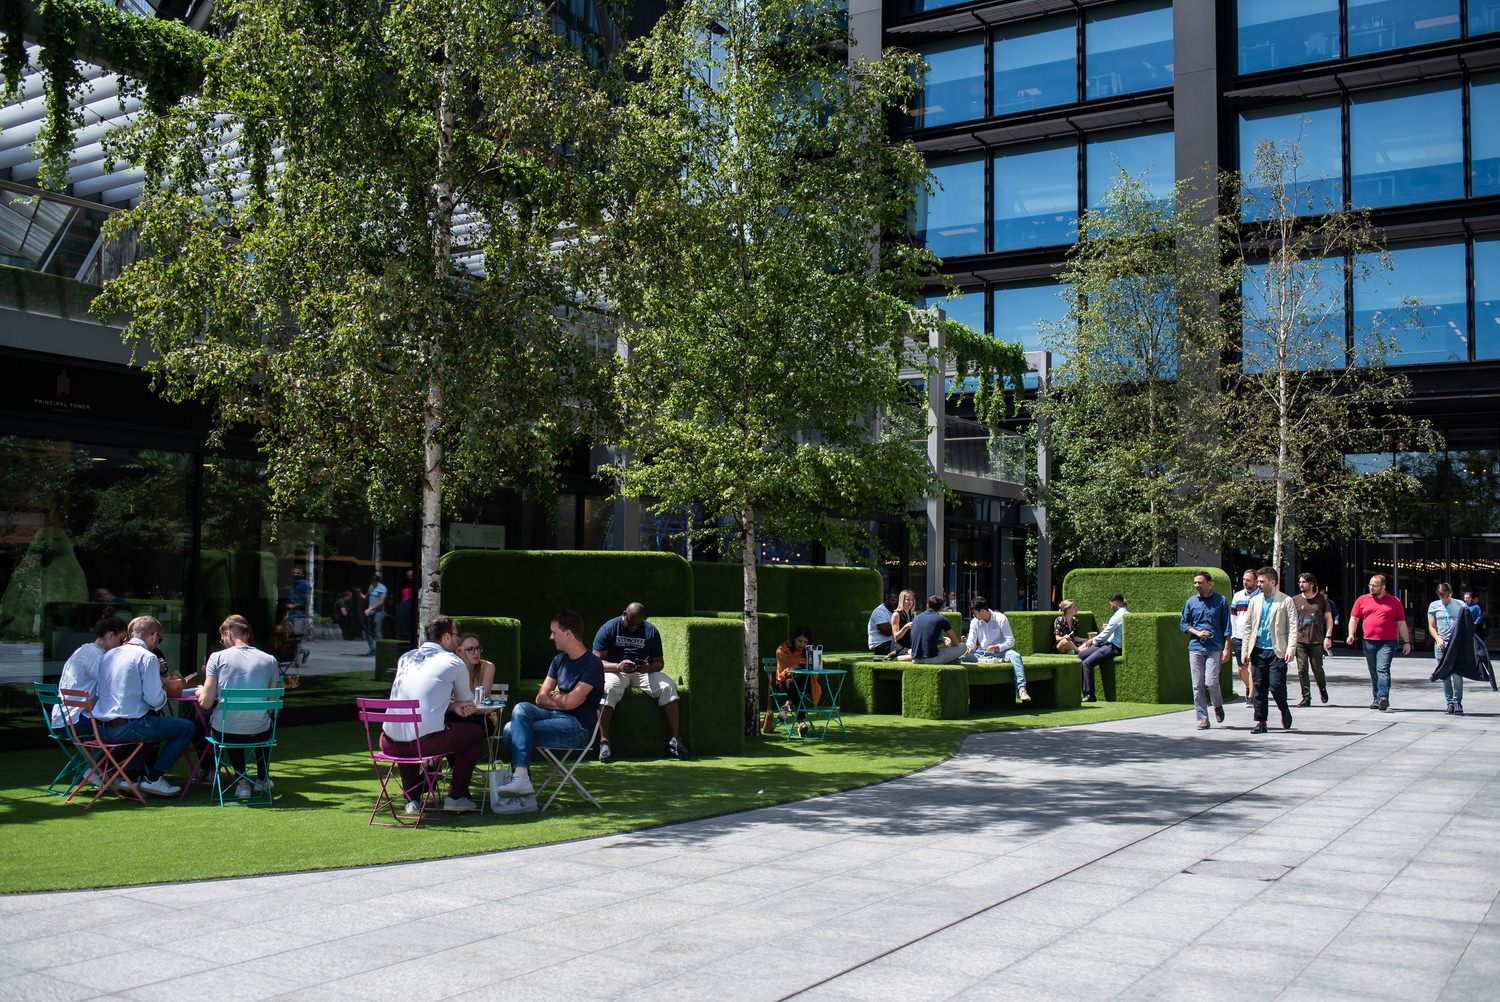 A group of people that are sitting at tables in a grassy area in front of a building under some trees for shade.